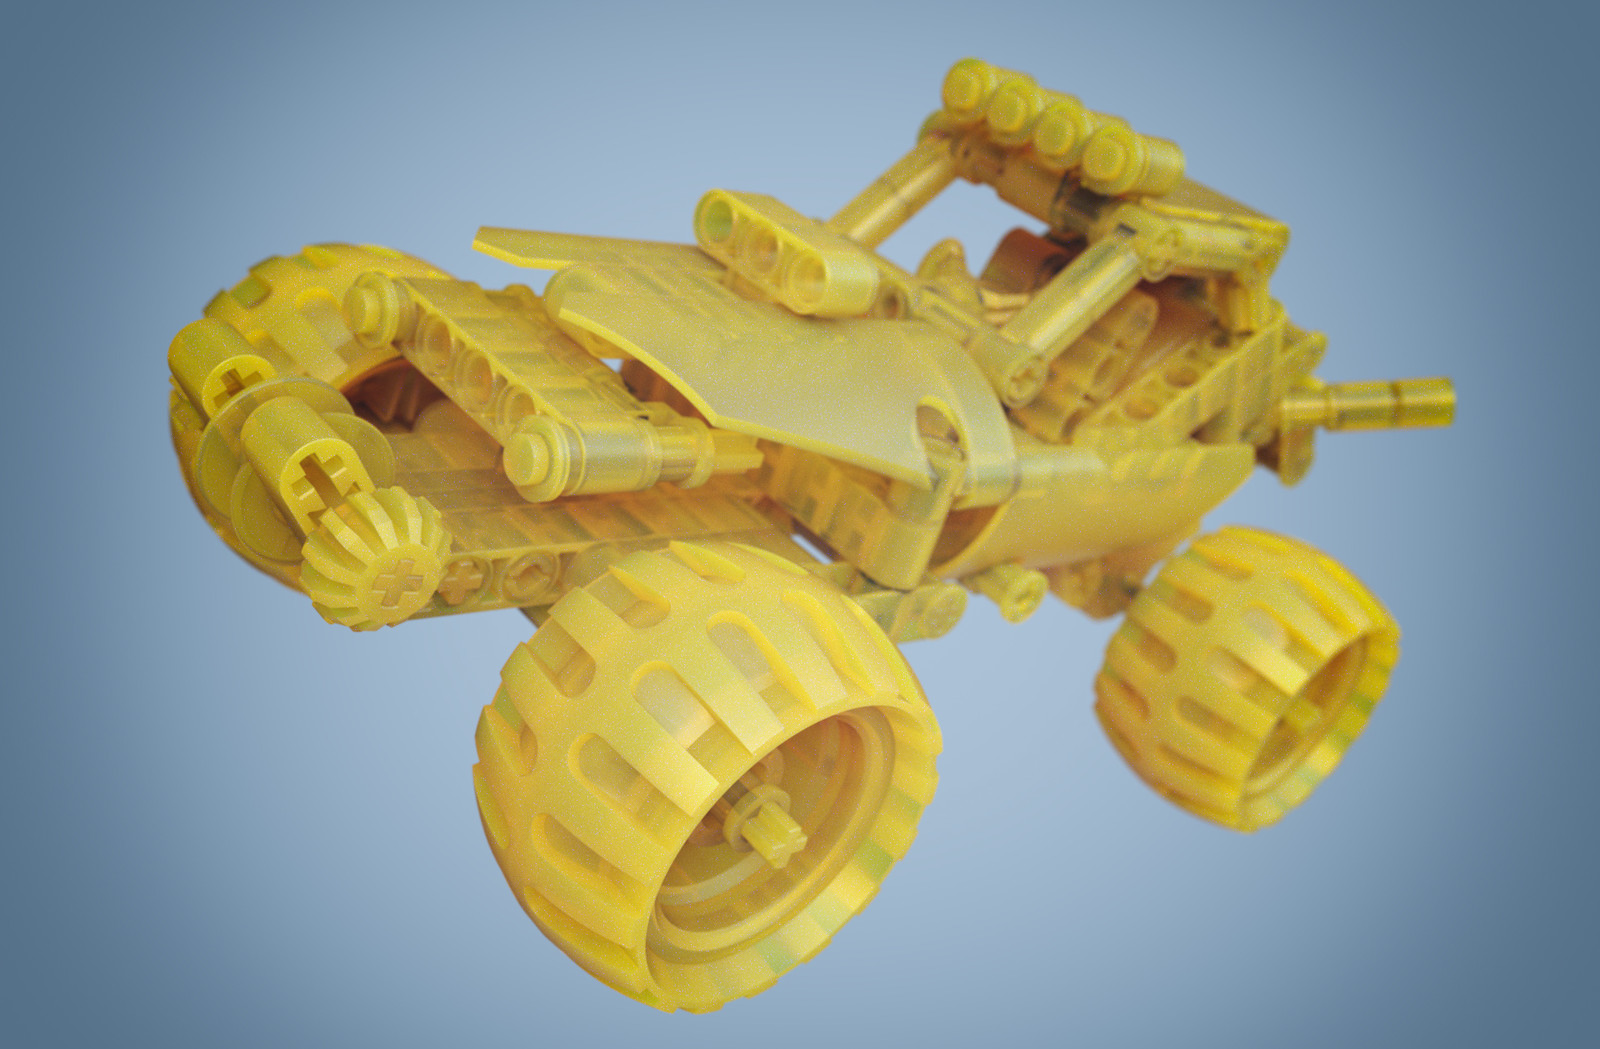 KeyShot 7 Beta - Desert Racer (Yellow)